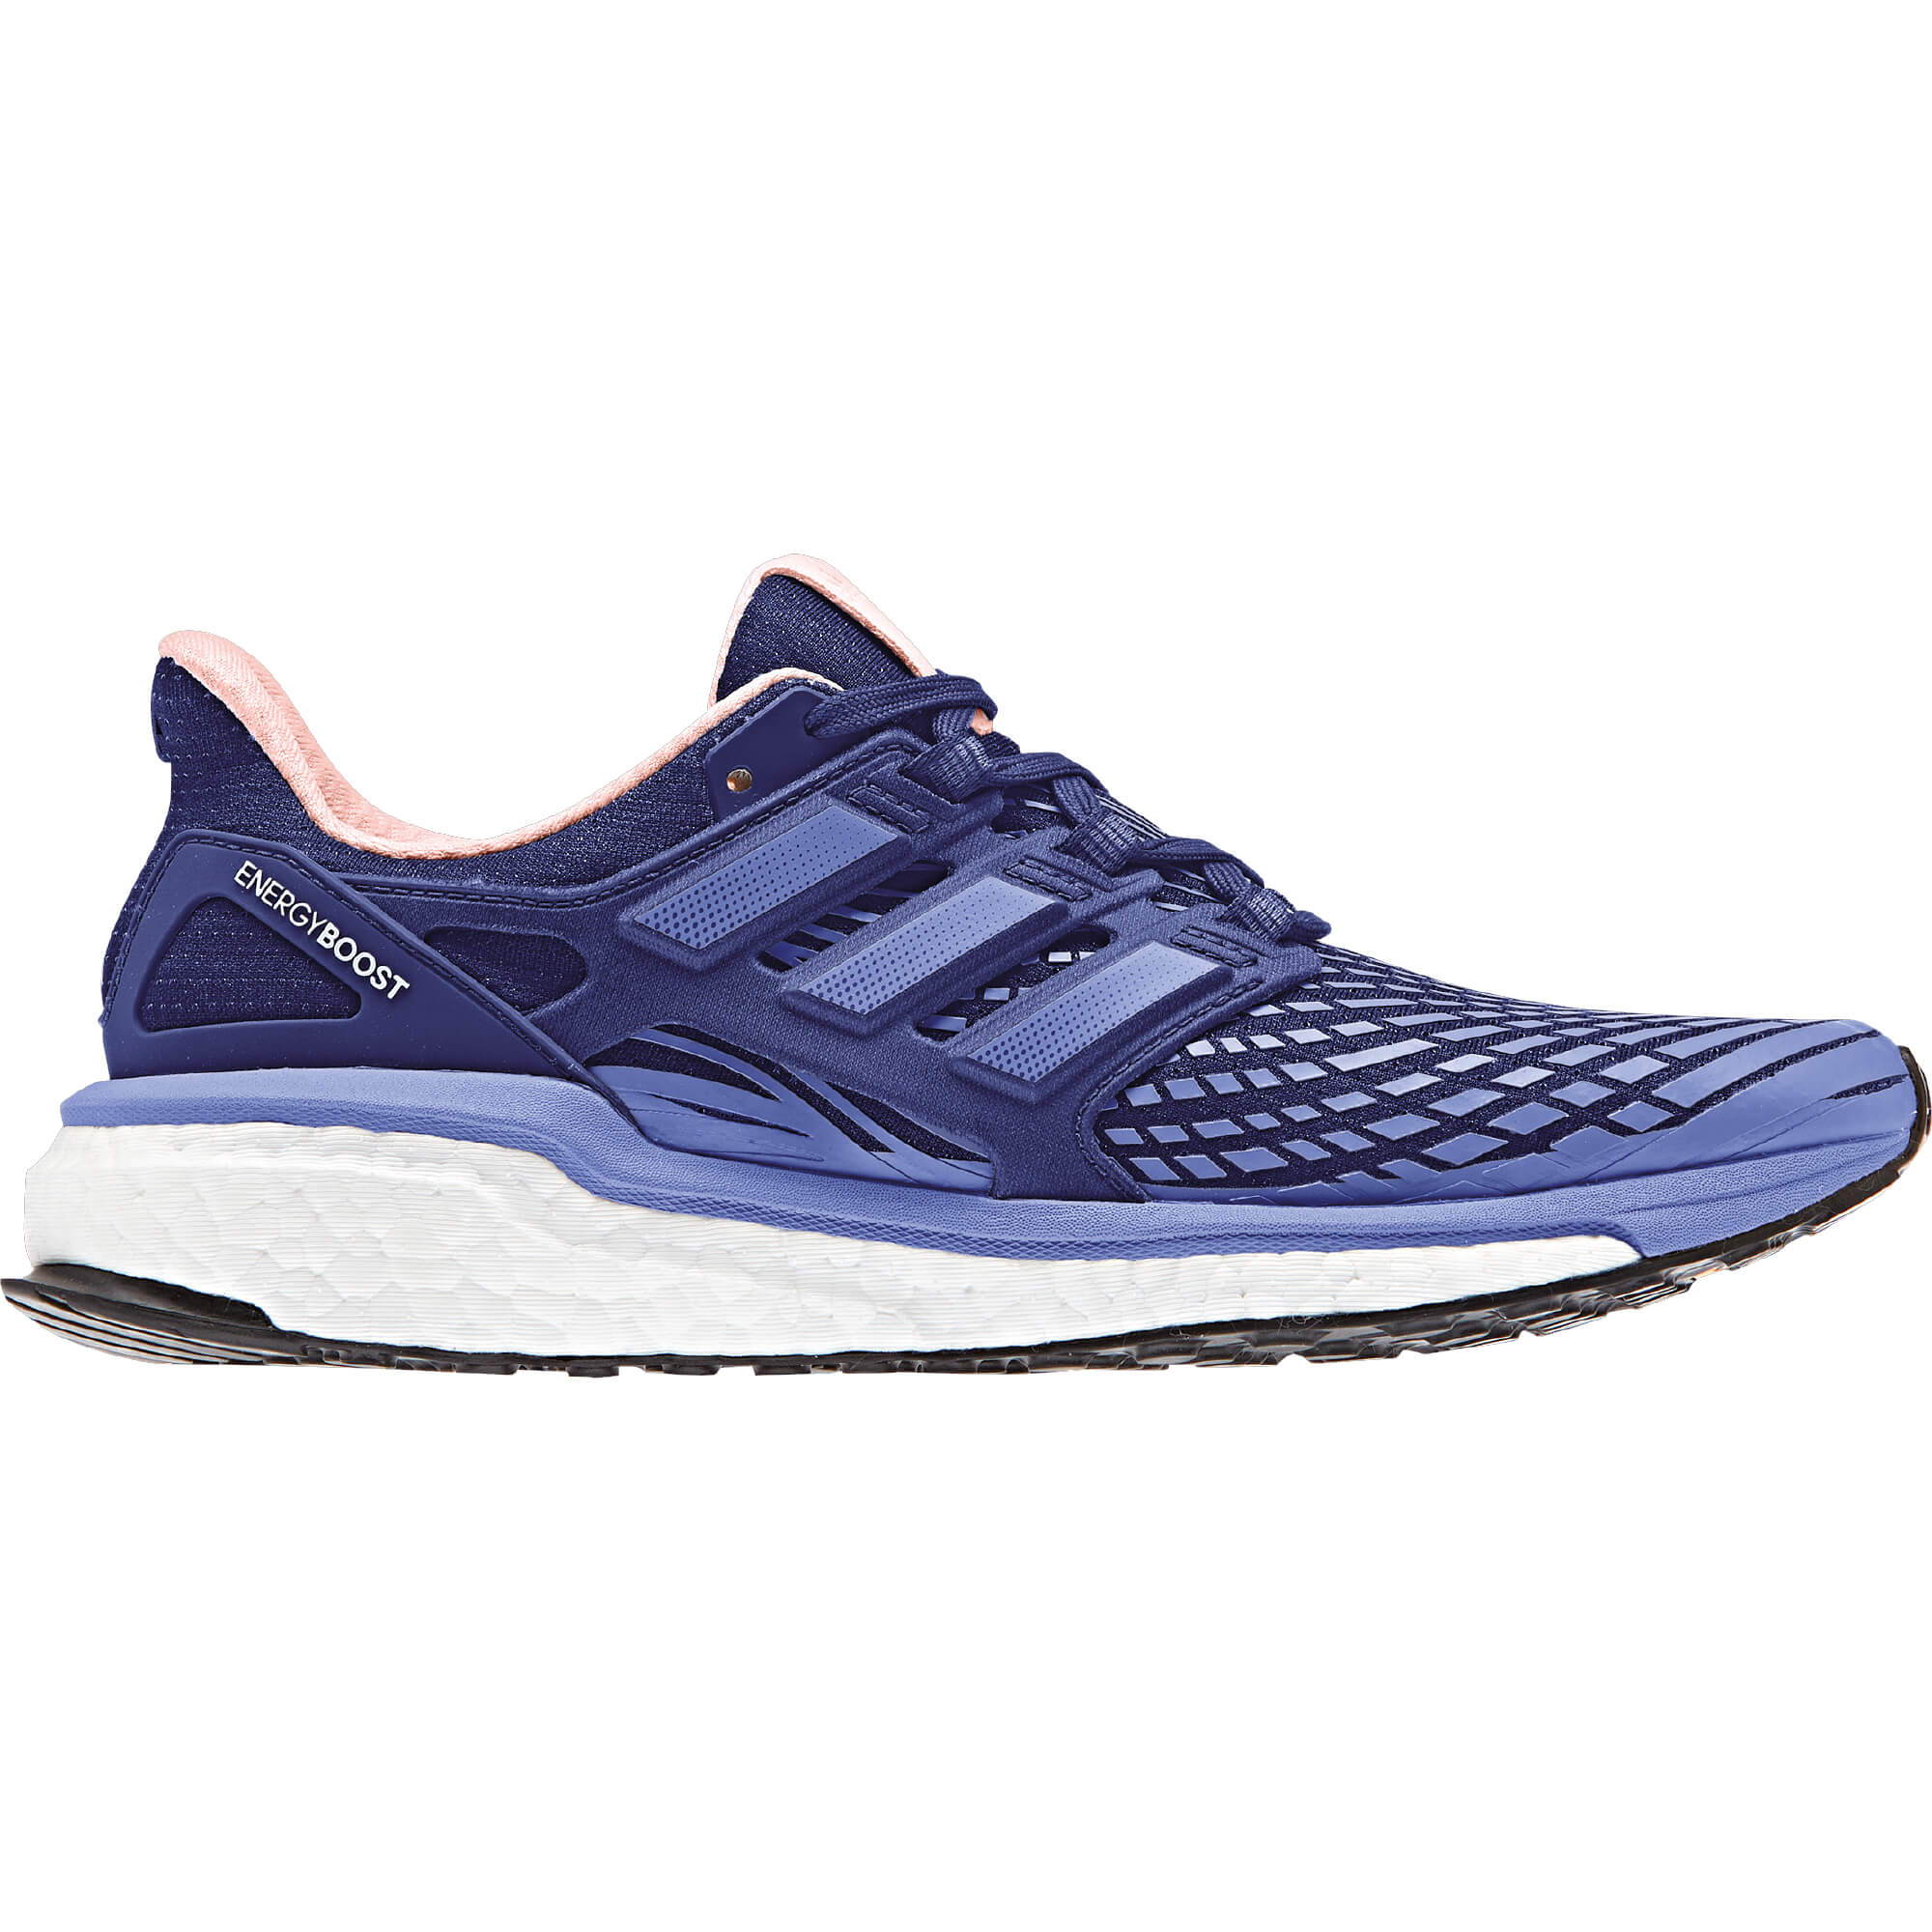 adidas Energy Boost, vel. 40 2/3